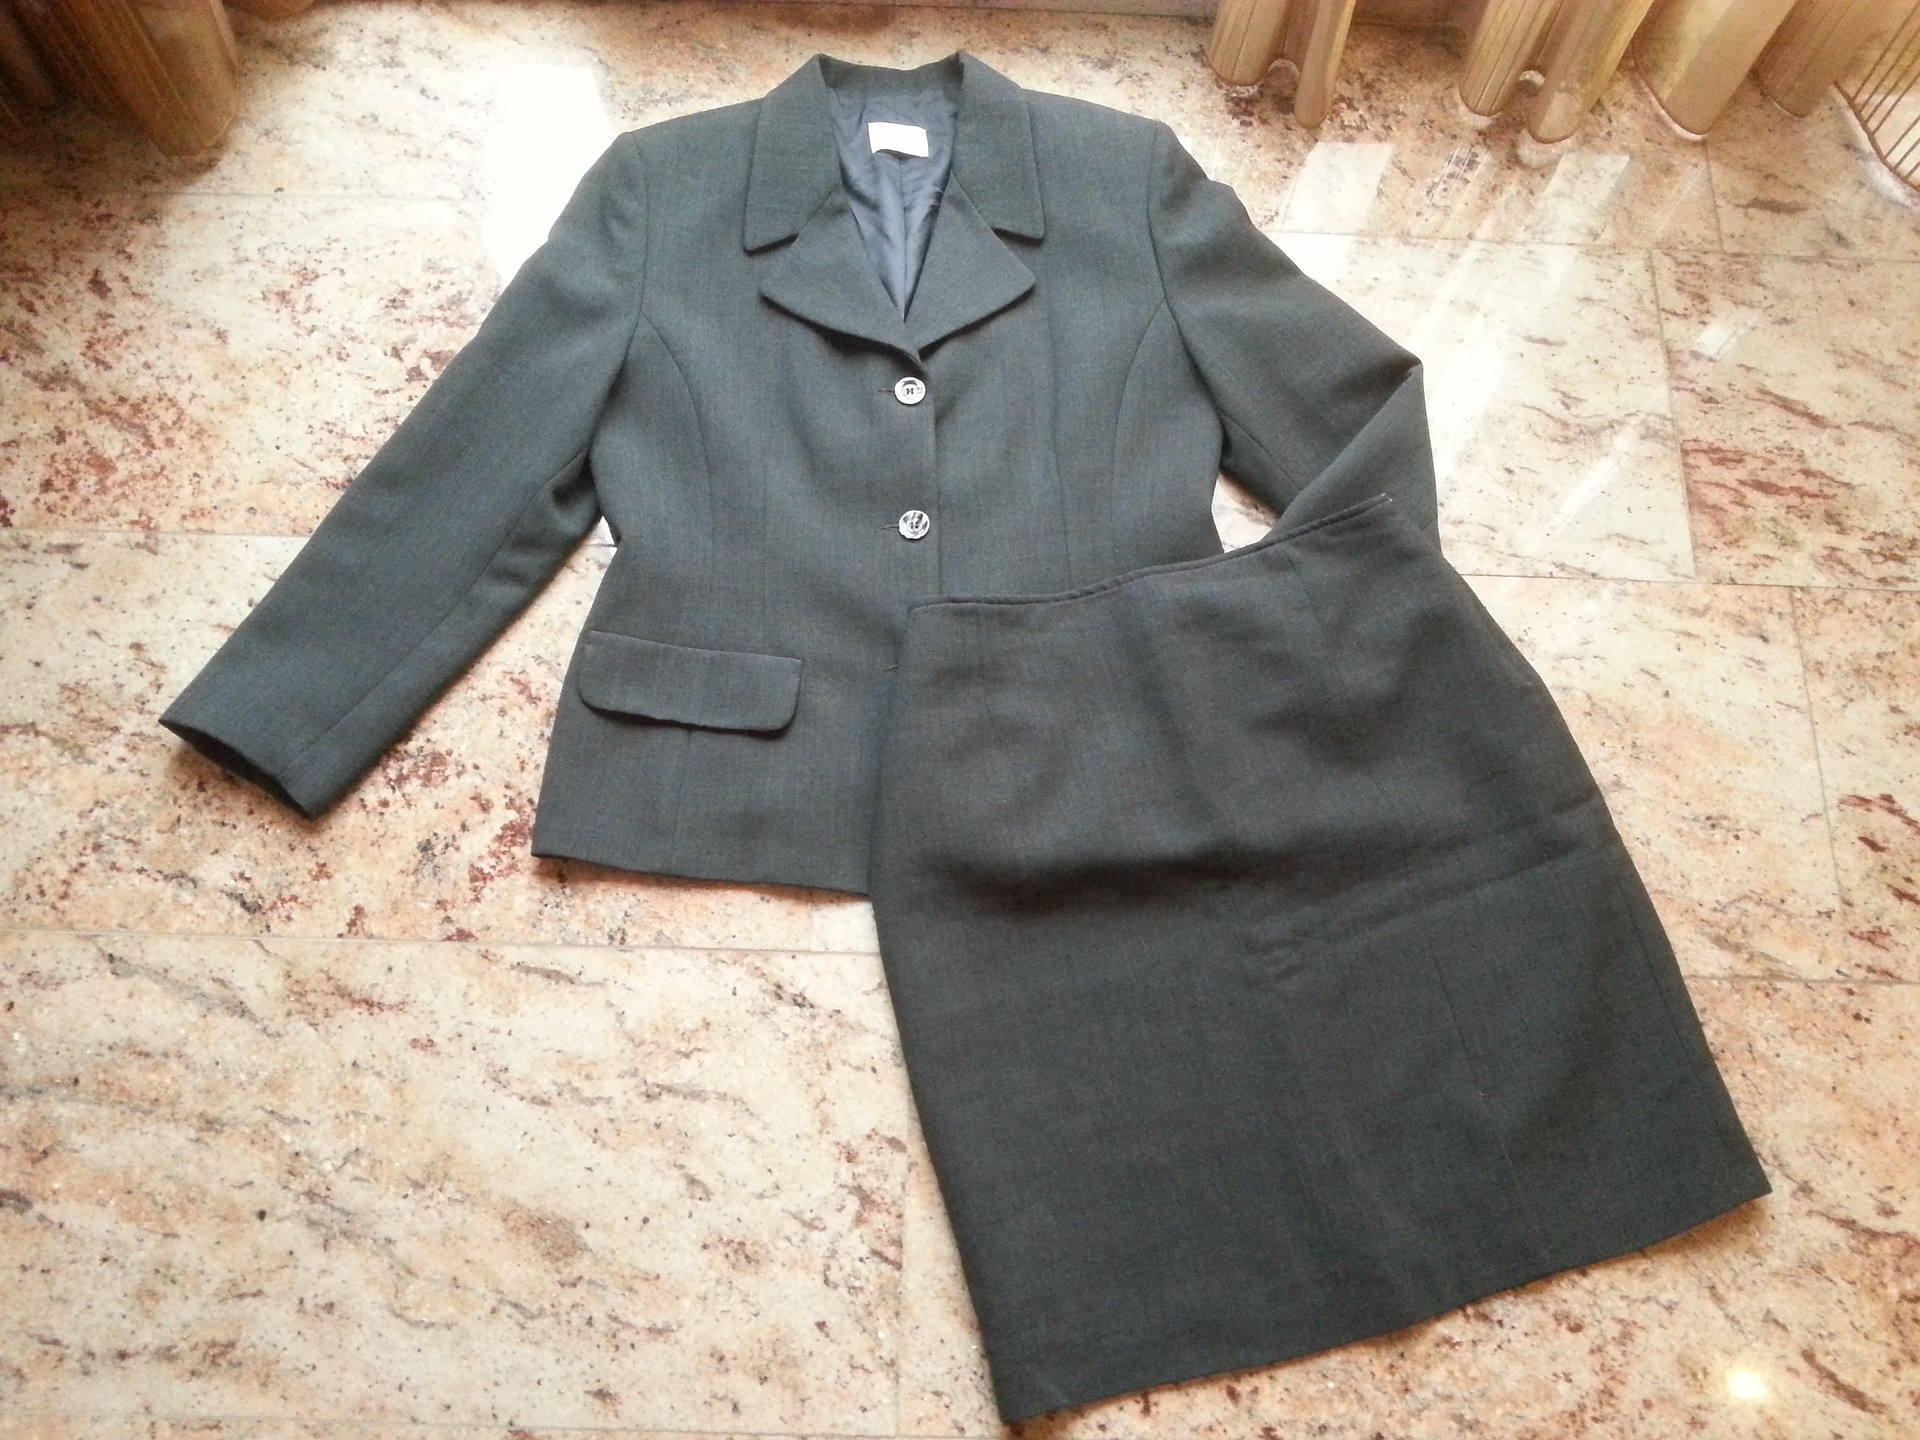 11 steps to dress appropriately for job hunting